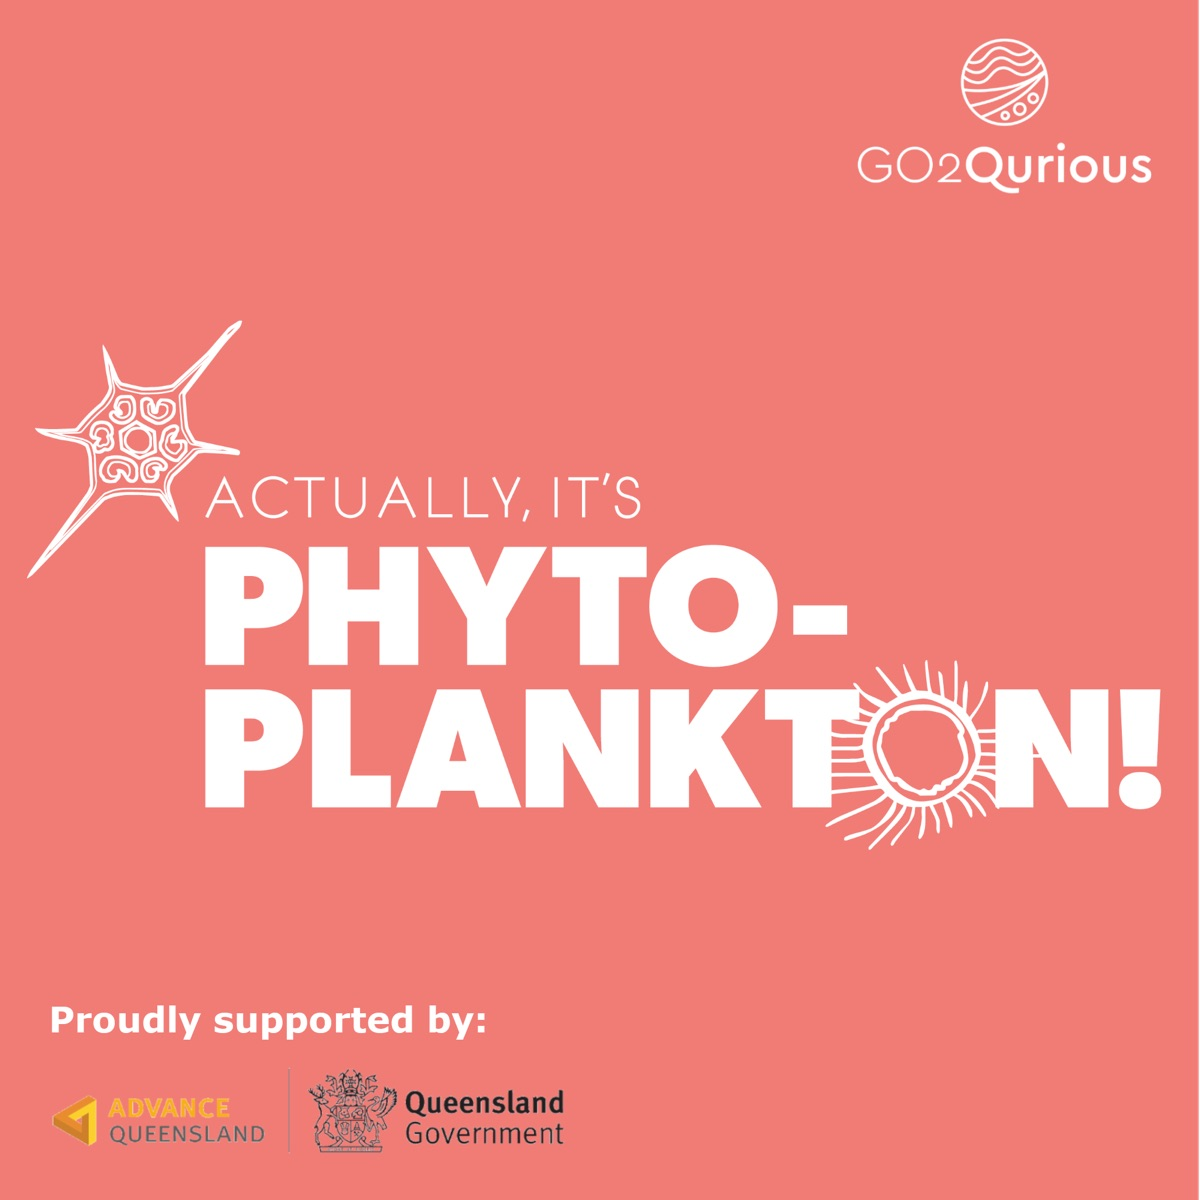 Actually, It's Phytoplankton!